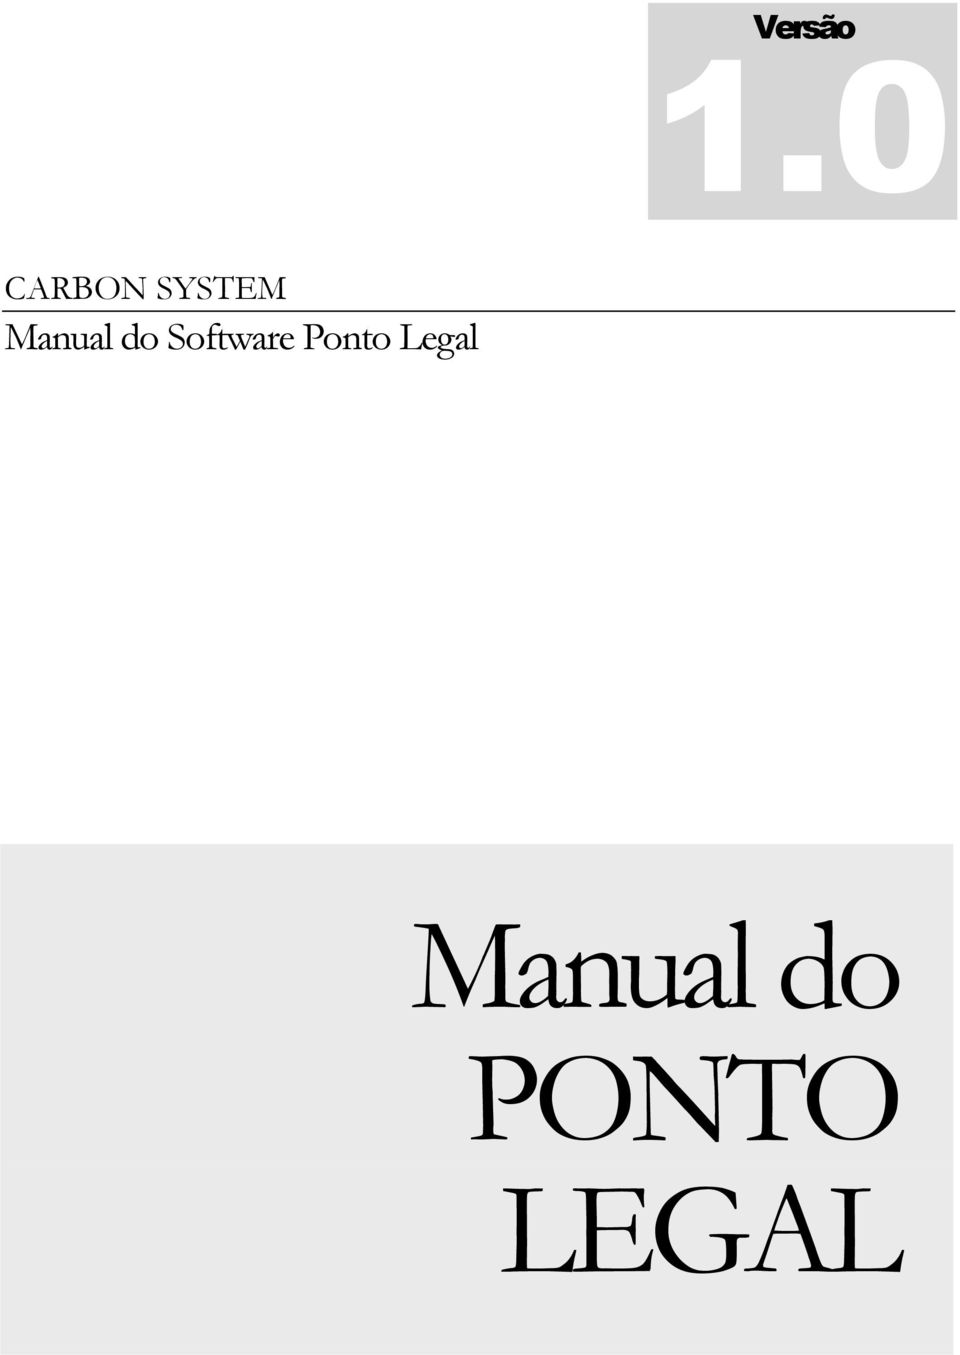 Manual do Software